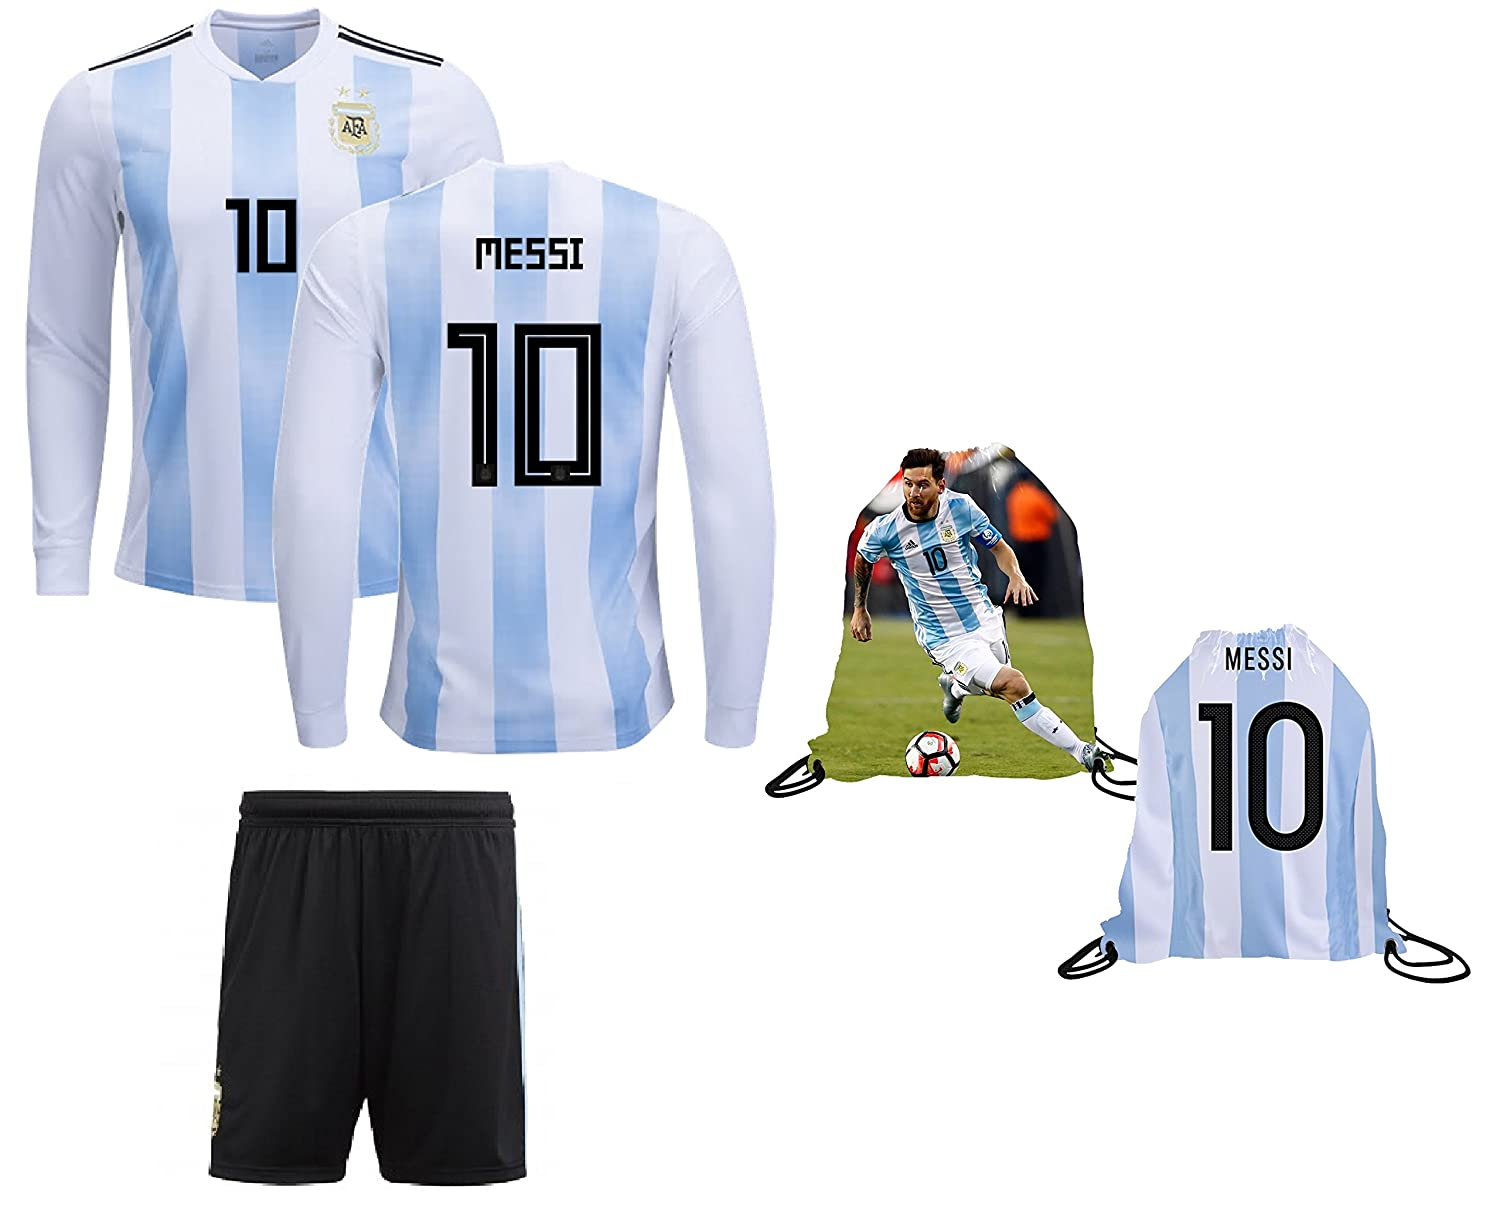 ea09ac841 AFA Messi Jersey Argentina Home Long Sleeve Kids Lionel Messi Jersey Soccer  Gift Set Youth Sizes ✓ Premium Quality ✓ Soccer Backpack Gift Packaging